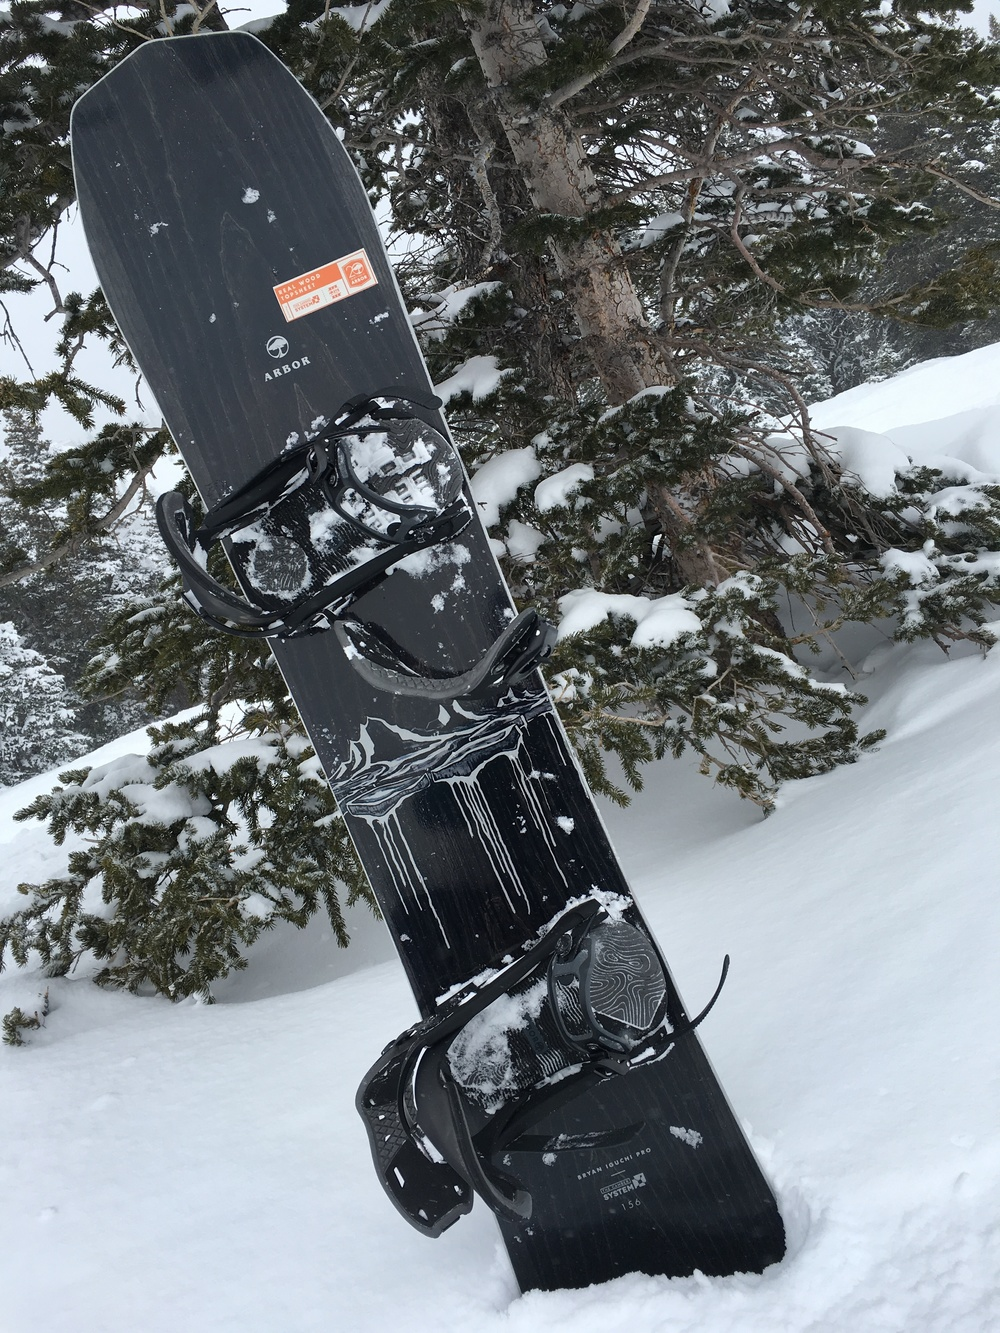 ARBOR BRYAN IGUCHI PRO MODEL, $595, WITH CYPRESS BINDINGS, $TBD